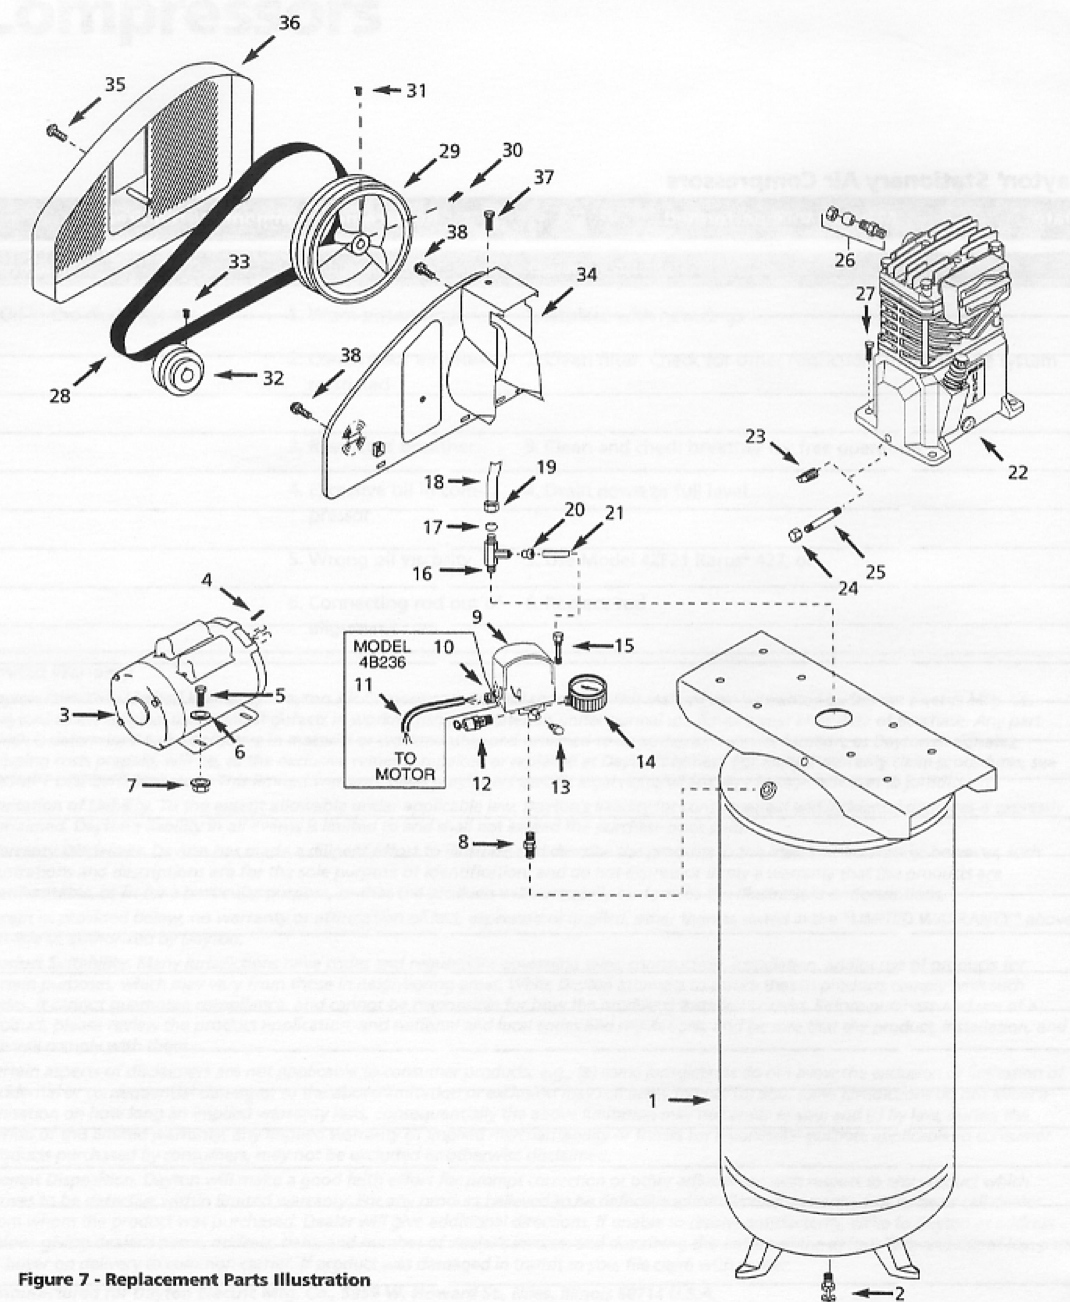 4B238A - Stationary Single-Stage Air Compressor Parts schematic